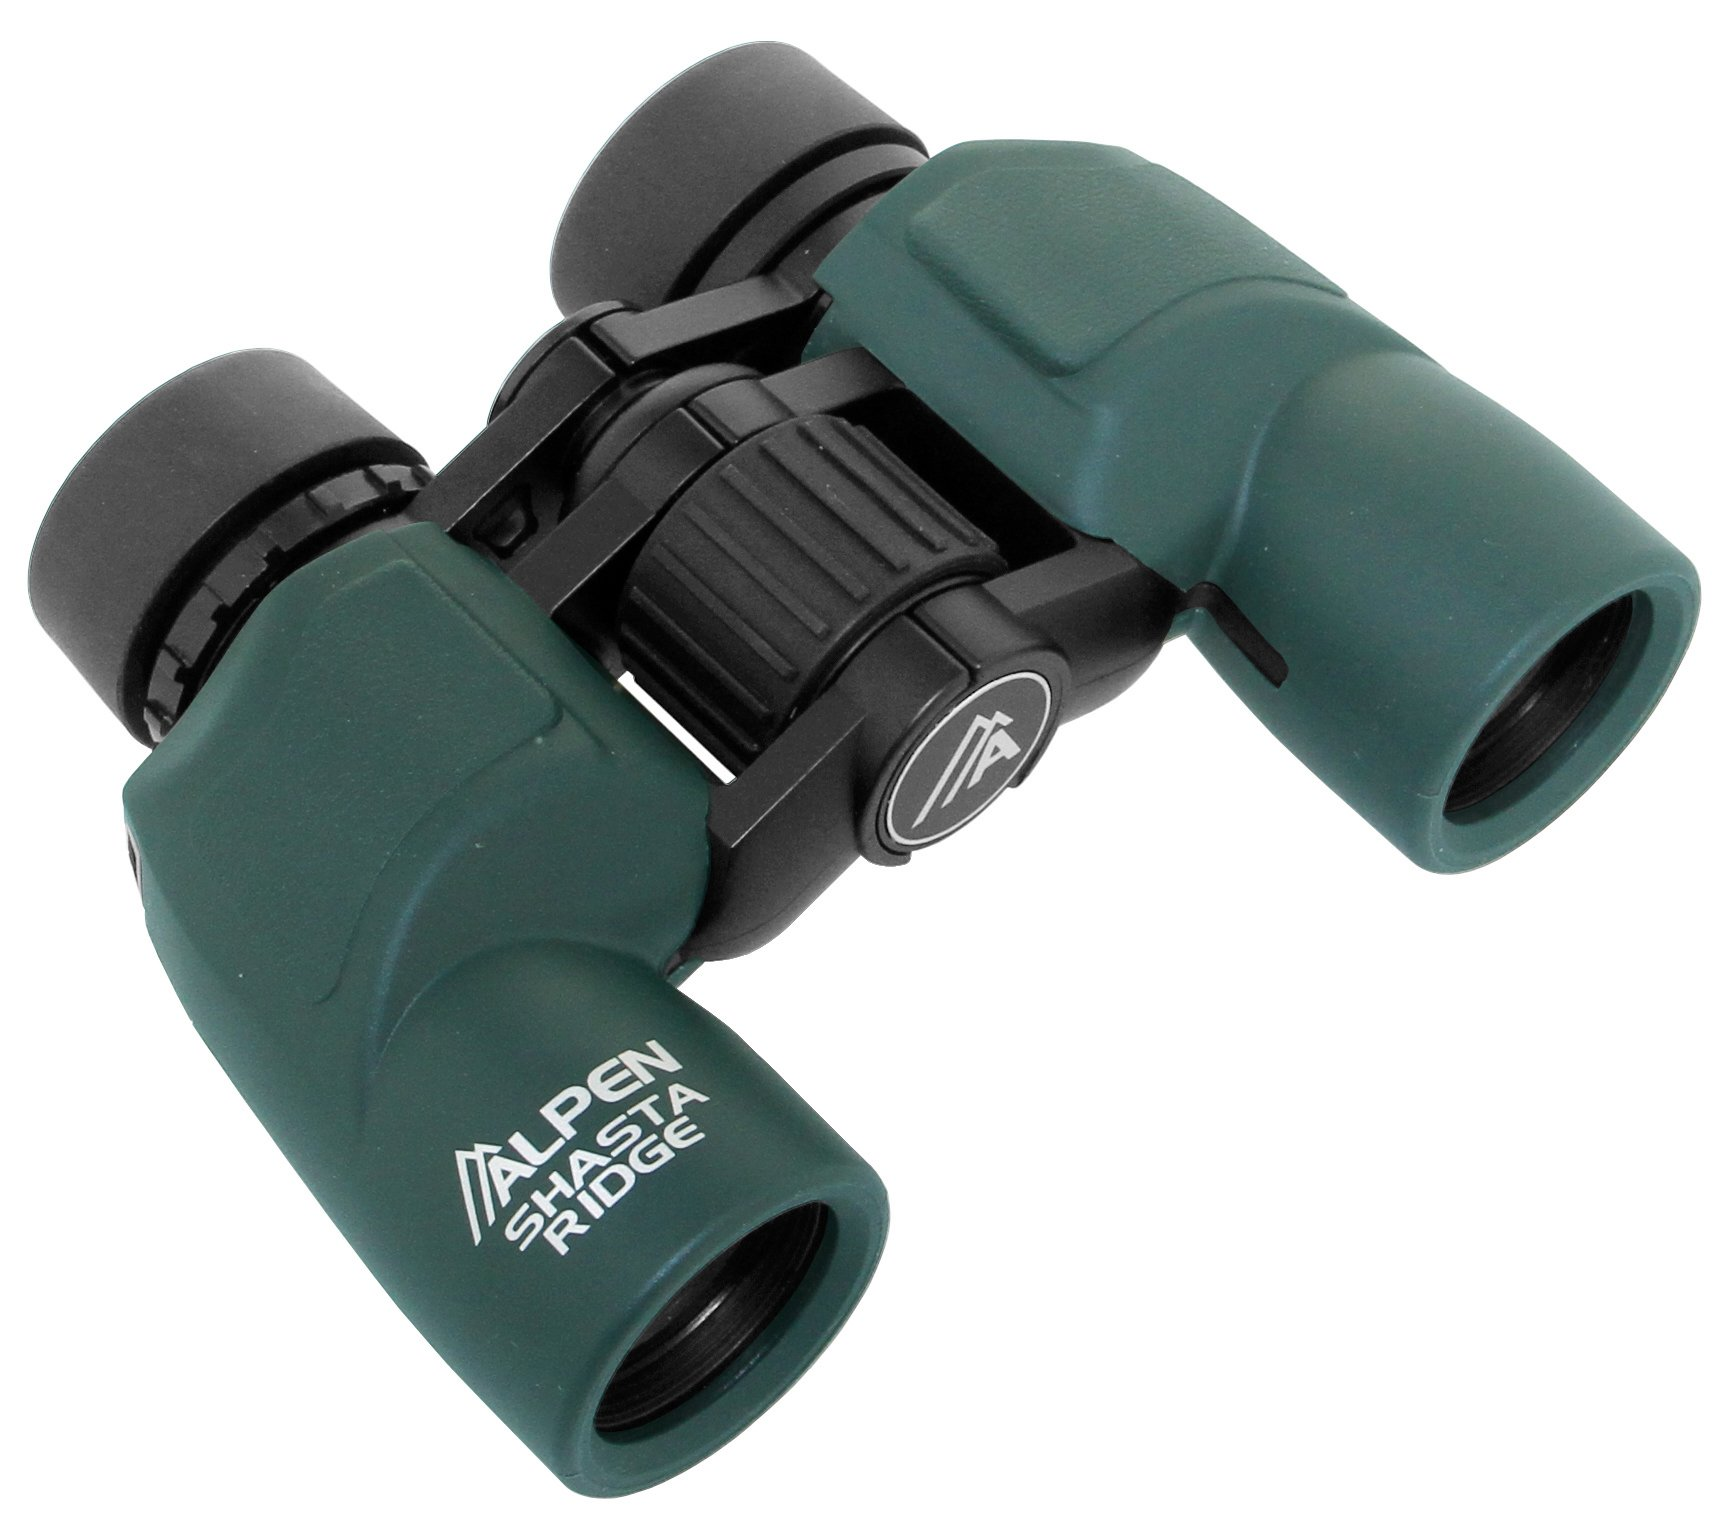 Alpen Optics SHASTA RIDGE 8x30 Super Close IPD Waterproof Fogproof Porro Prism Binocular by Alpen Optics